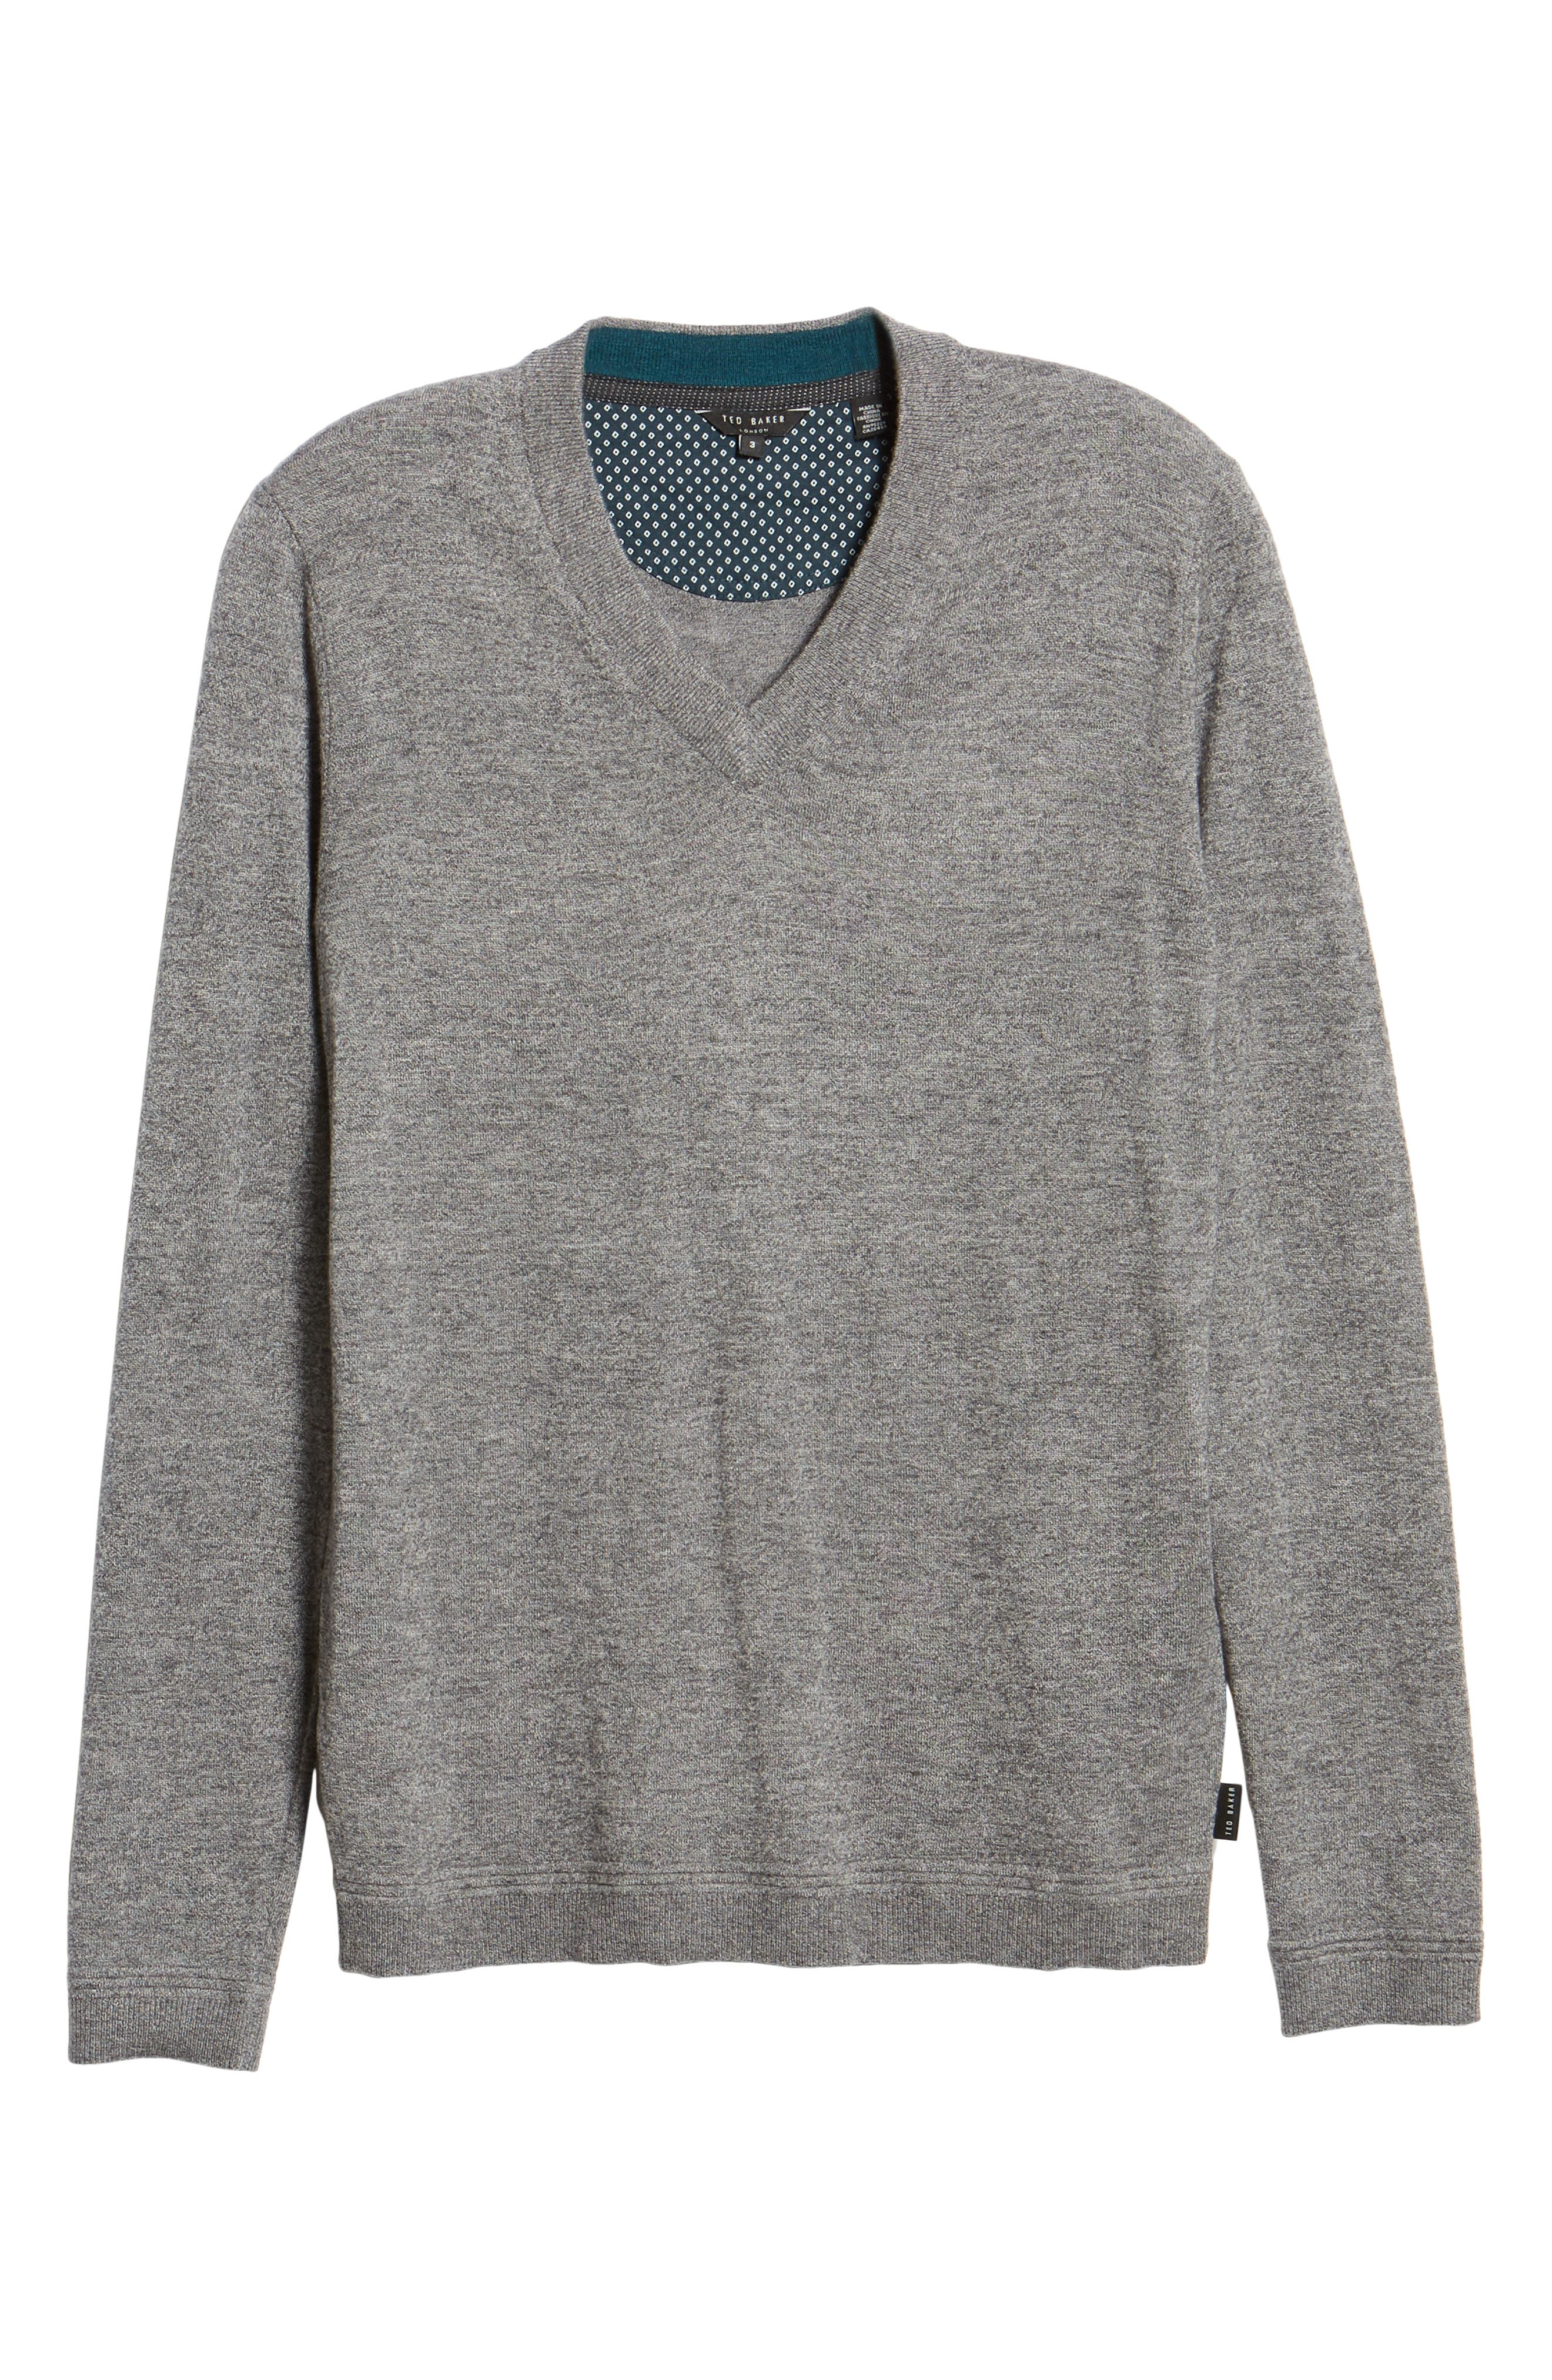 Noel Slim Fit V-Neck Wool Blend Sweater,                             Alternate thumbnail 6, color,                             GREY